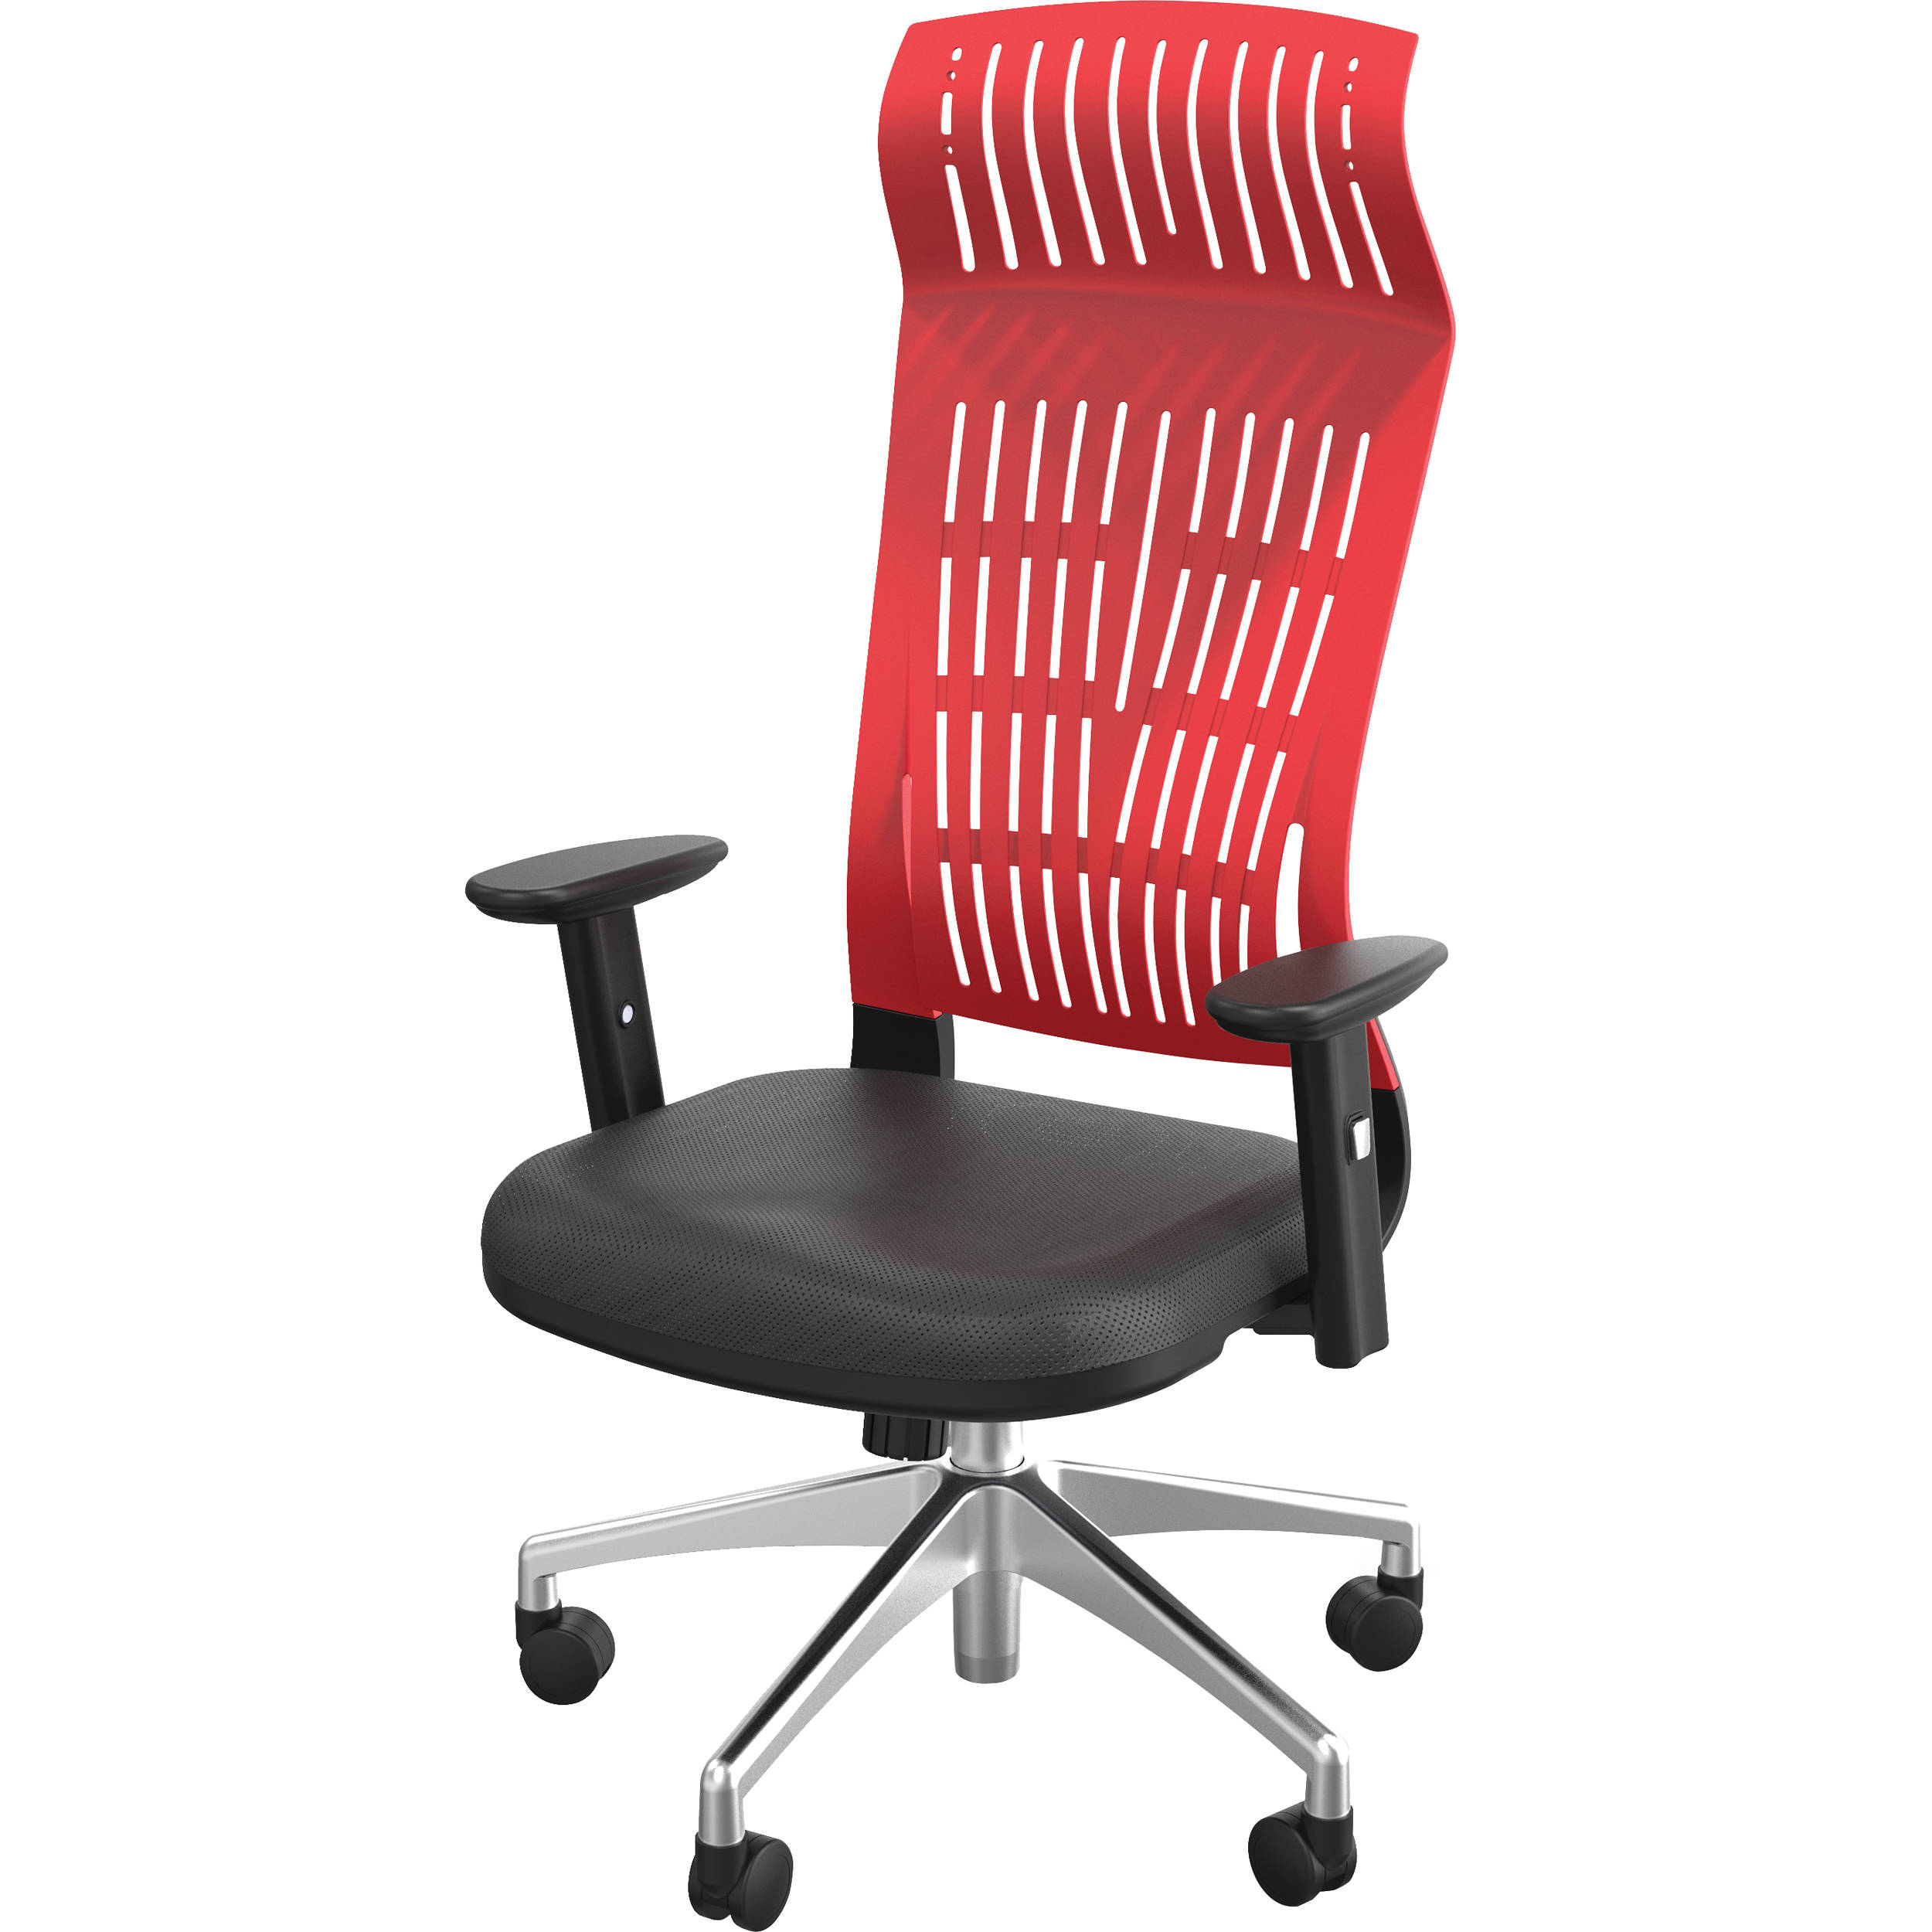 Balt Fly High Back Office Chair With Adjustable Arms Red 34747